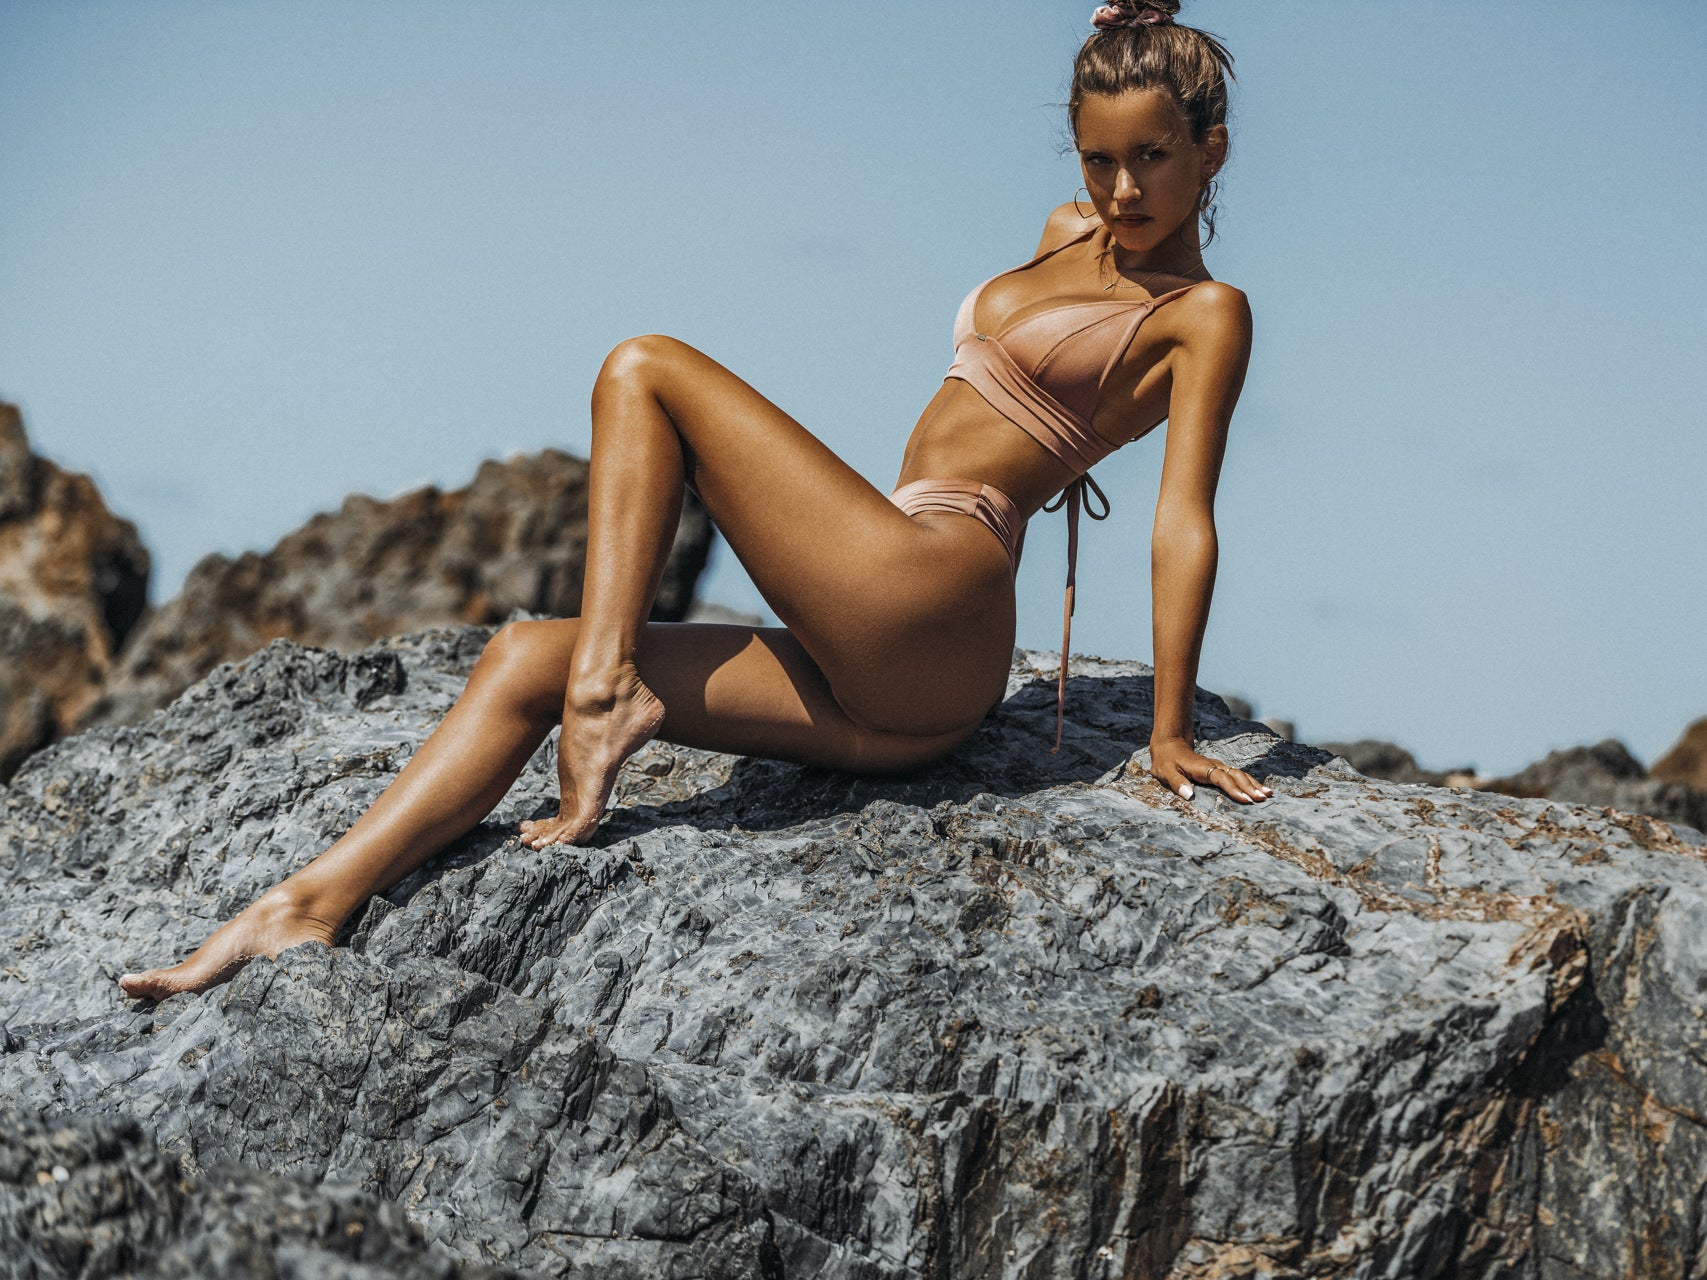 Isabelle Mathers wearing the For You Bikini Triangle Set Rosebud while sitting on a rock on the beach